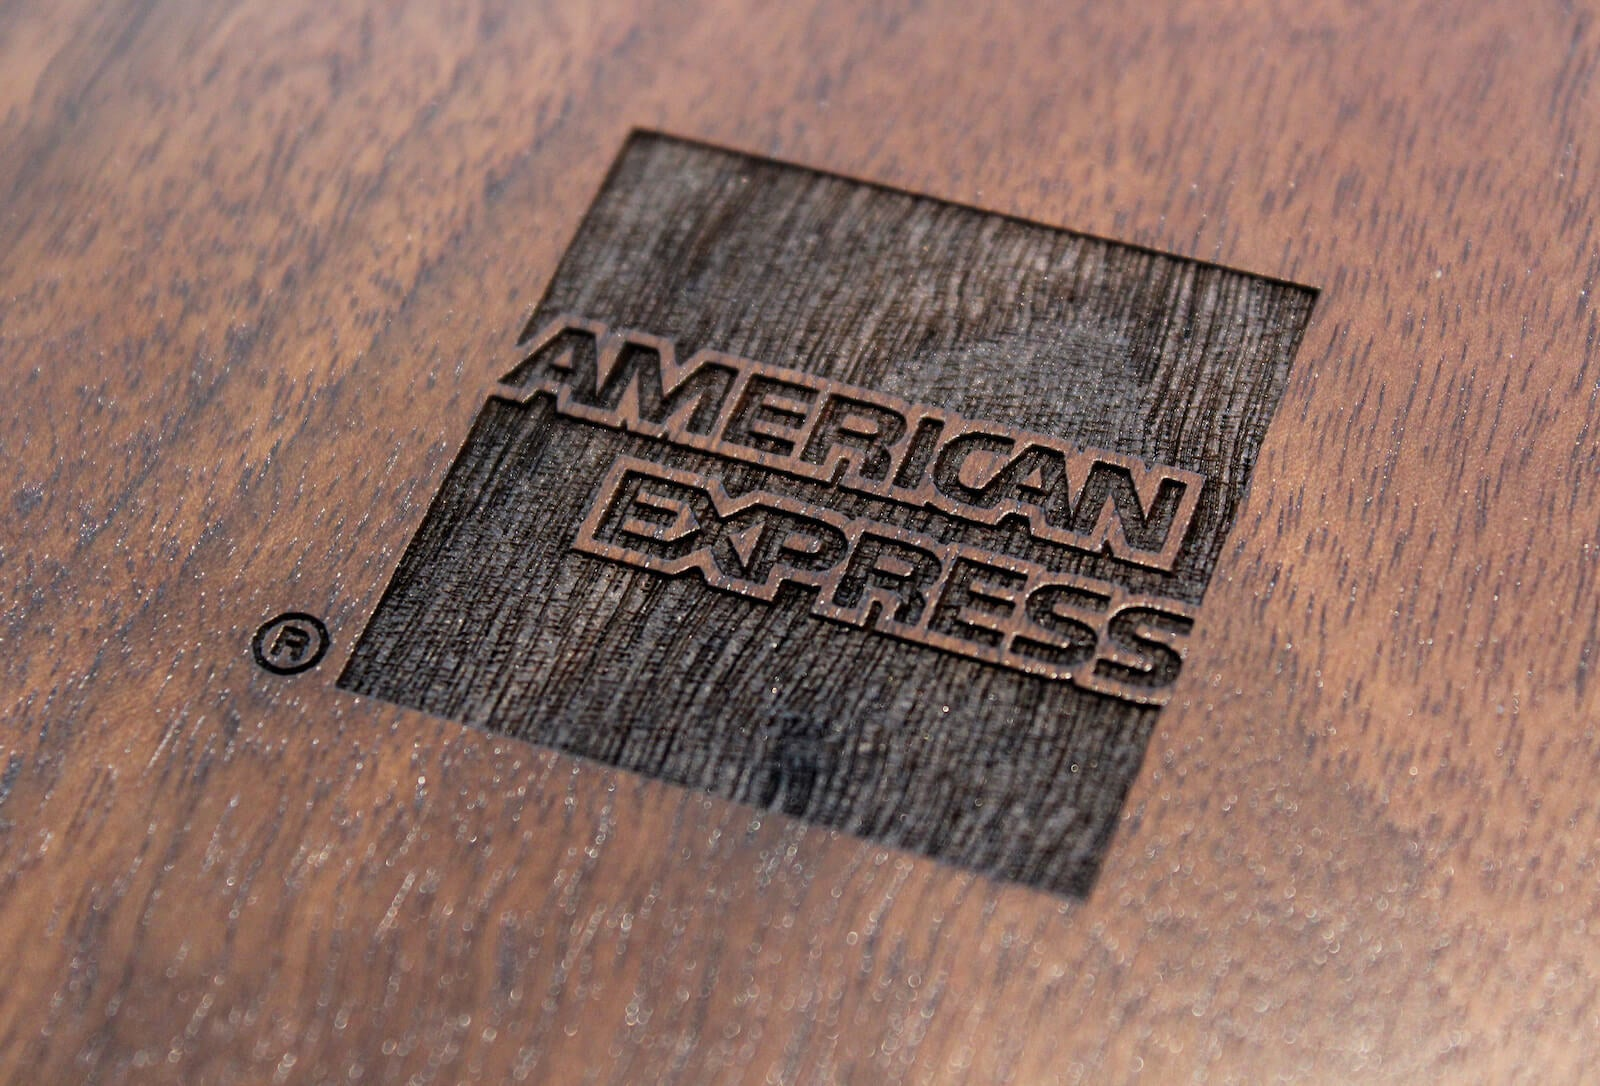 American Express extends intro bonus deadline on cards opened through May 31st